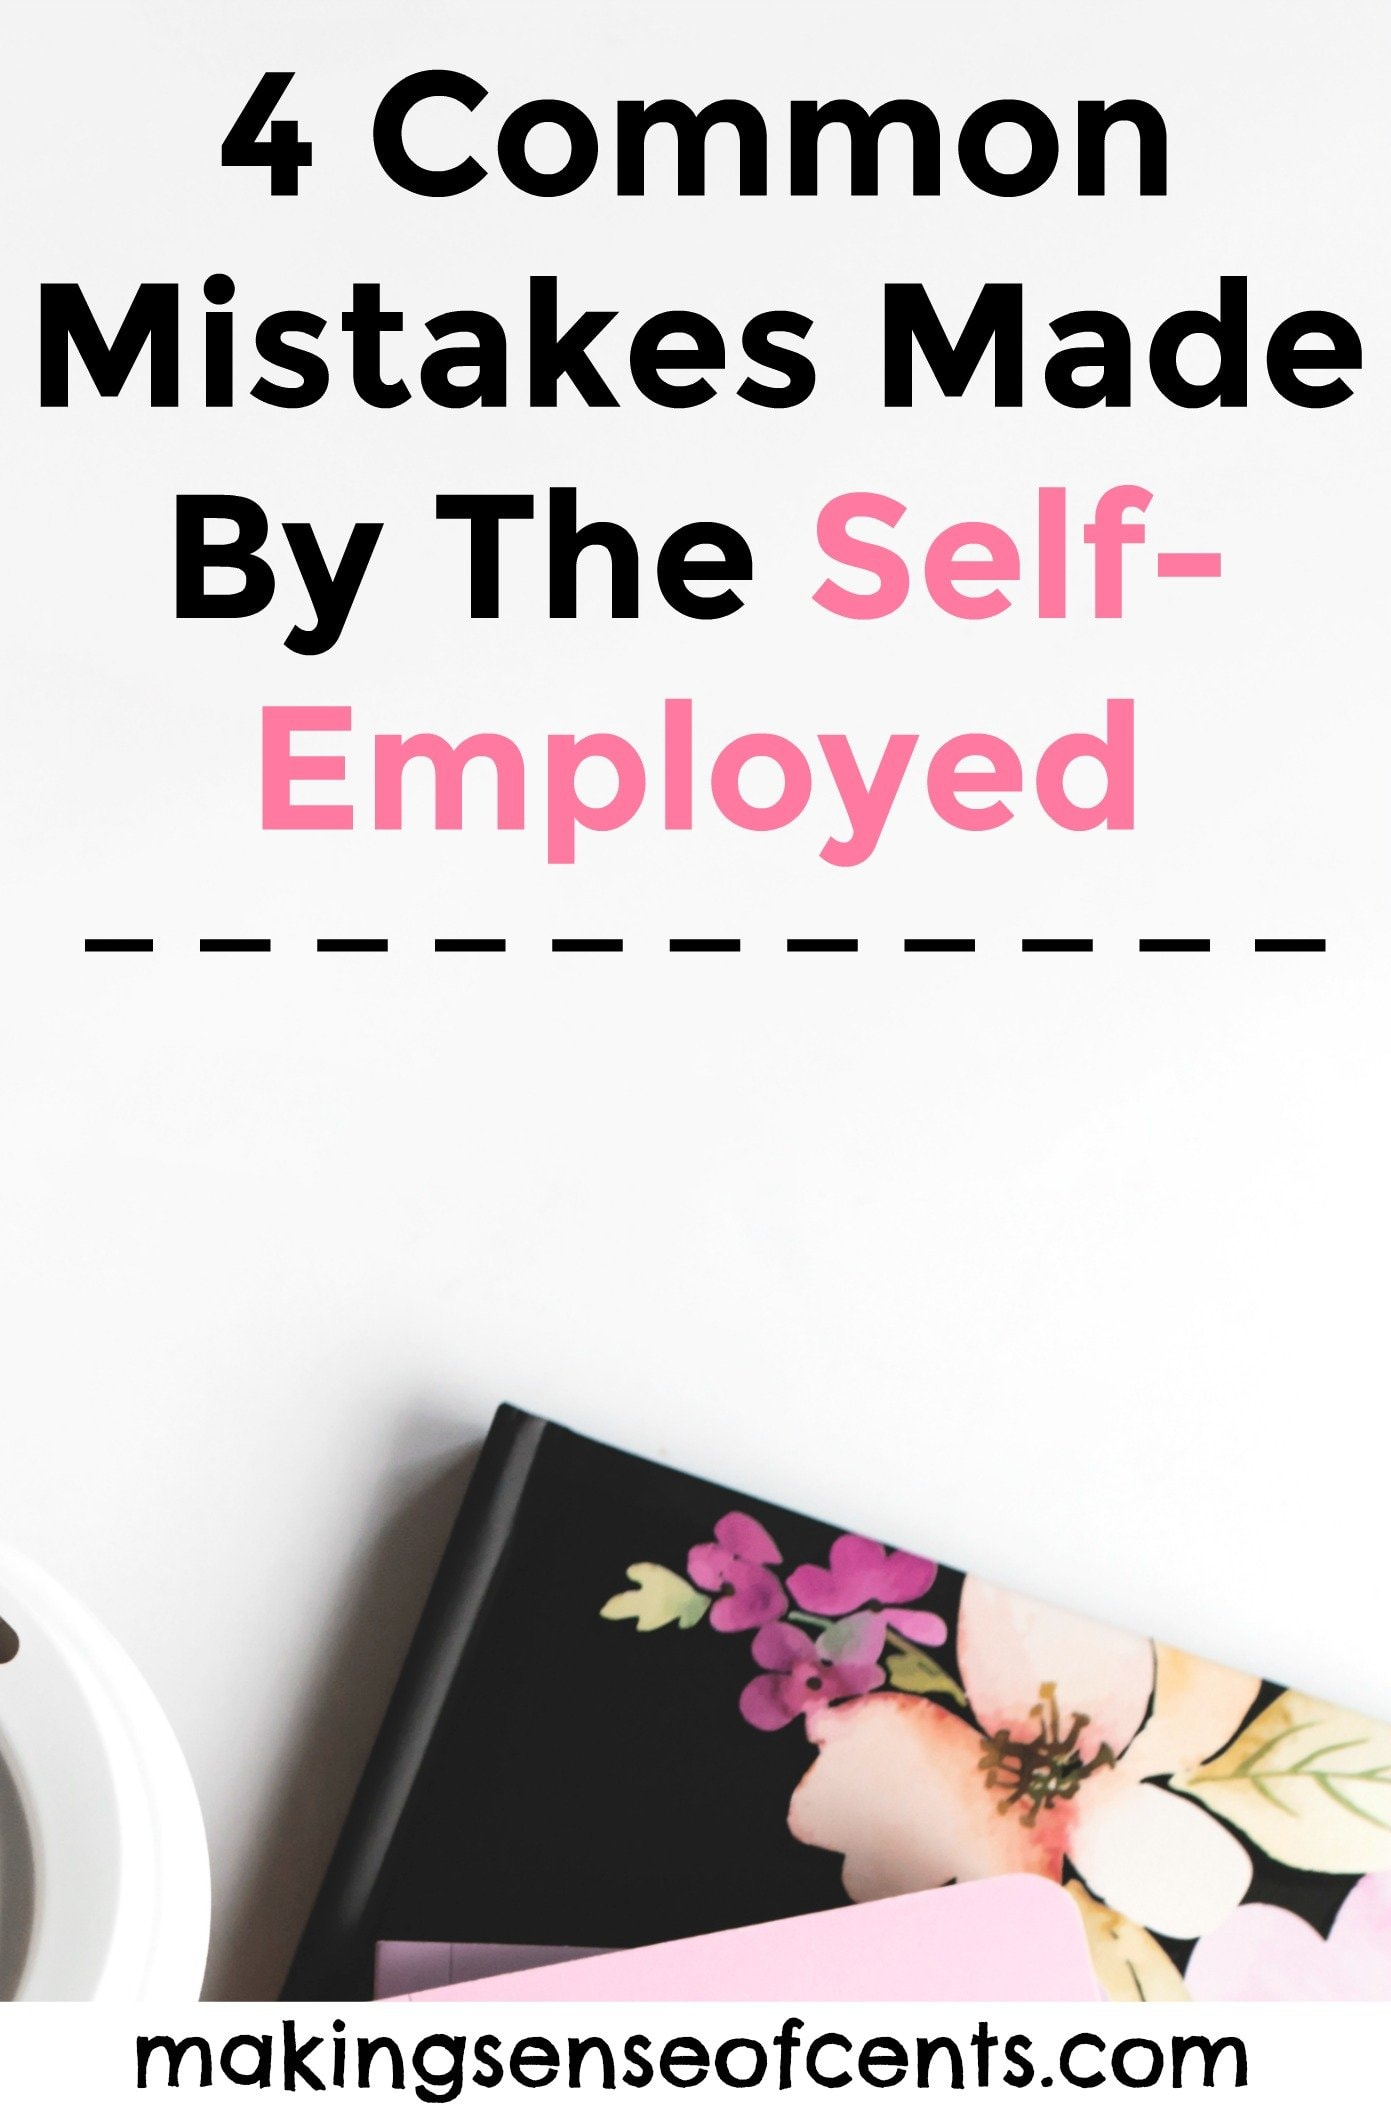 4 Common Mistakes Made By The Self-Employed